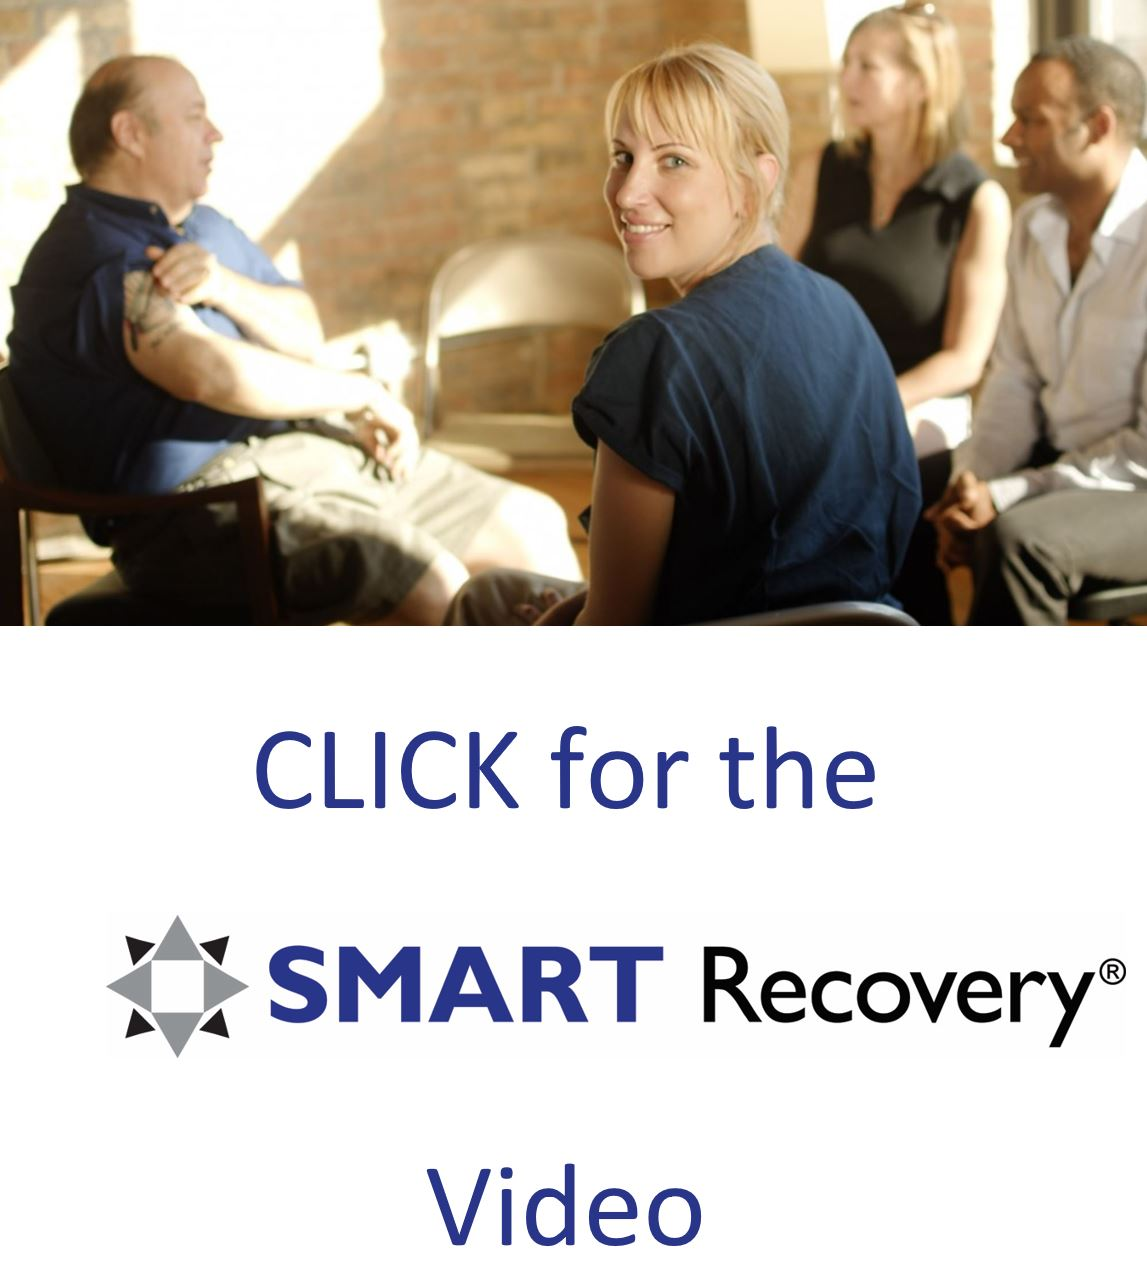 SMART Recovery Video